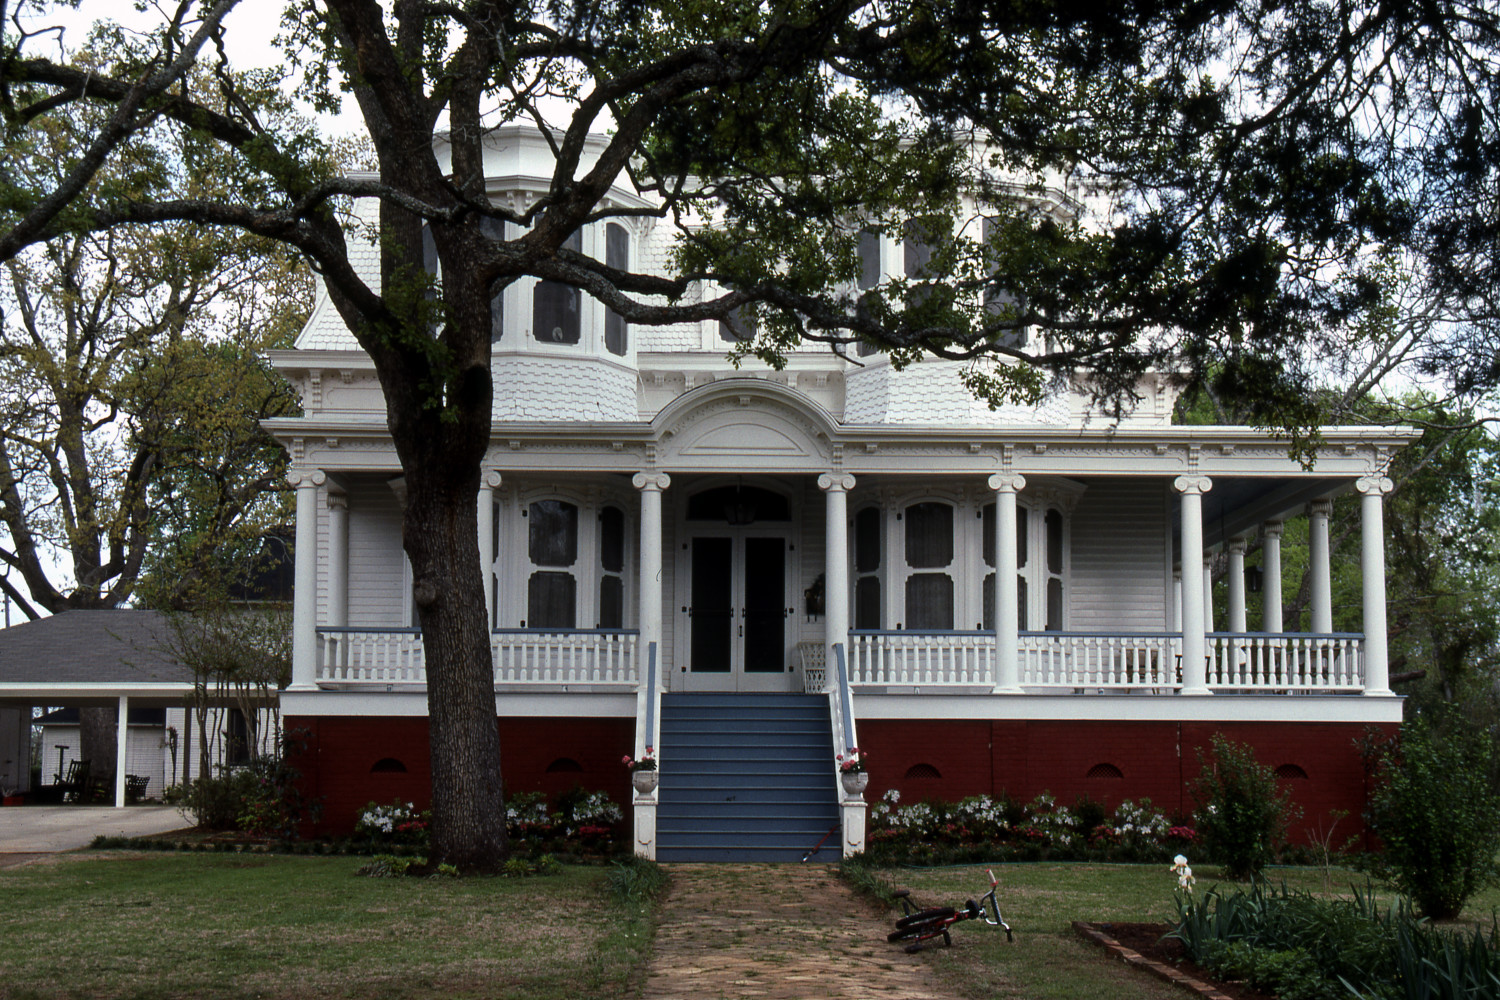 [412 S. Royall], Close-up photograph of the front of a two-story white house with blue and red accents, located at 416 S. Royall in Palestine, Texas.,